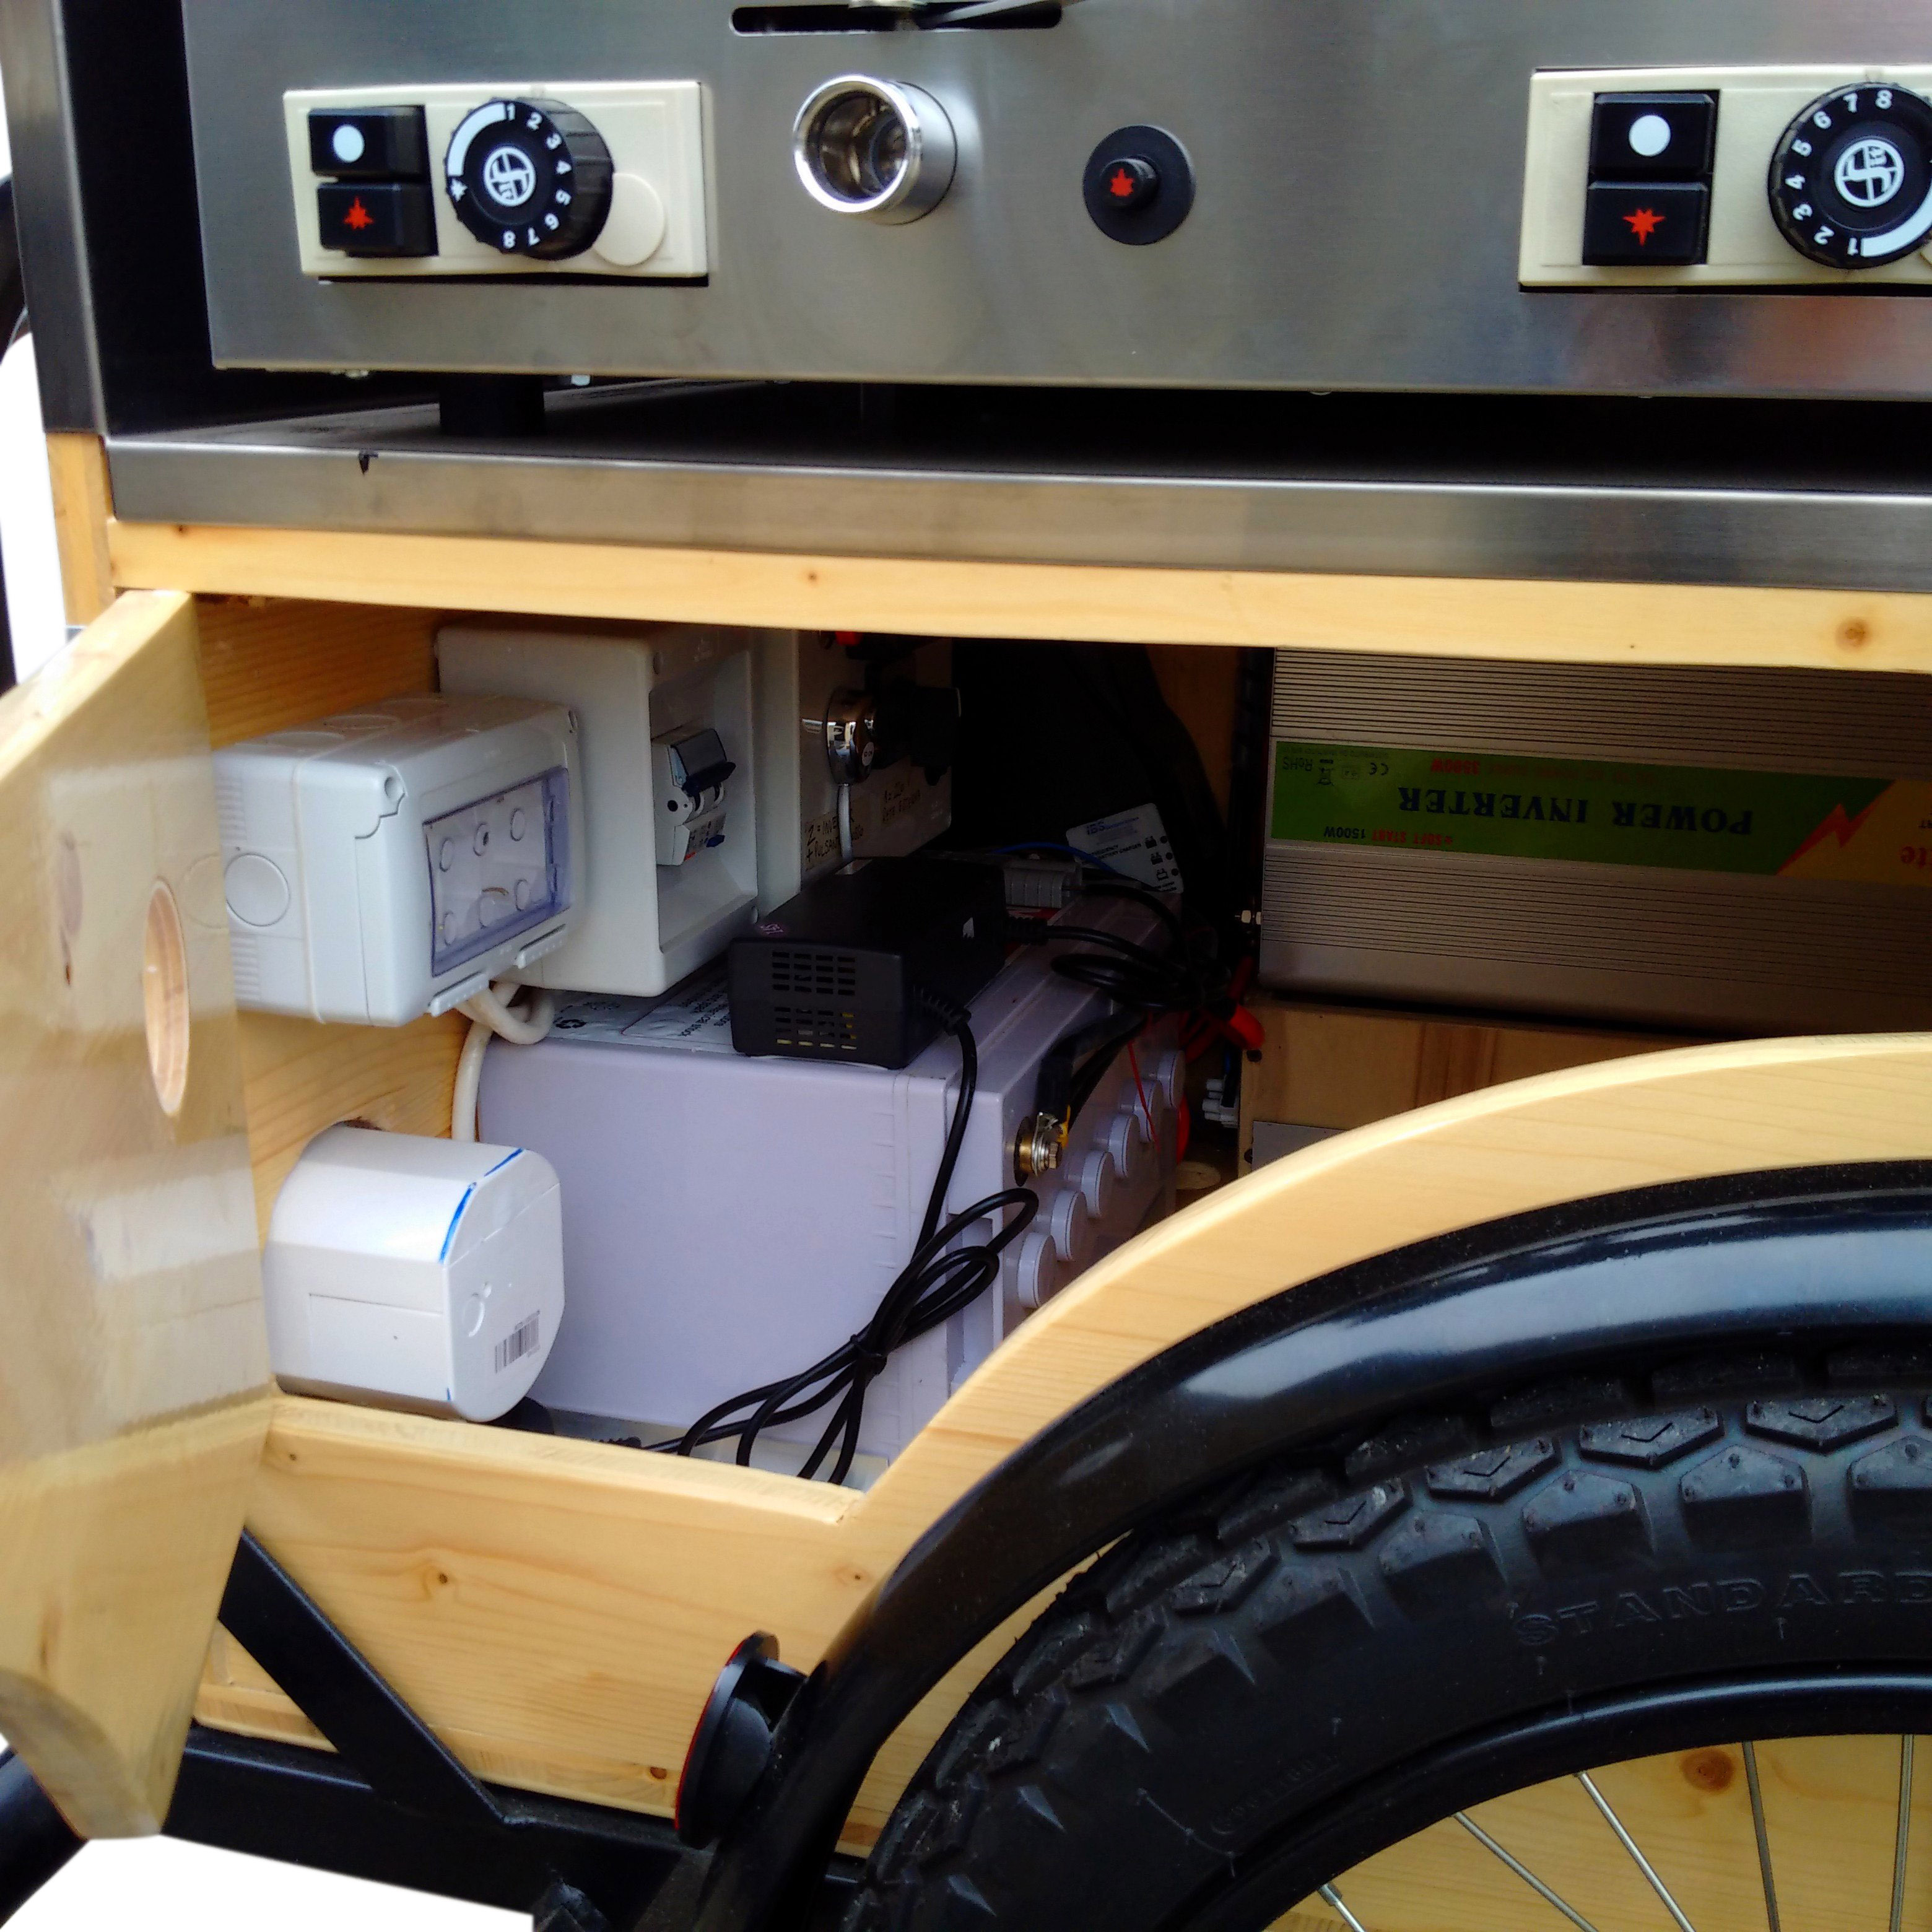 STREET_FOOD_BIKE_QUADRA_FRIGGITRICE_IN_LEGNO_TRICICLO_CARGO_BIKE_20